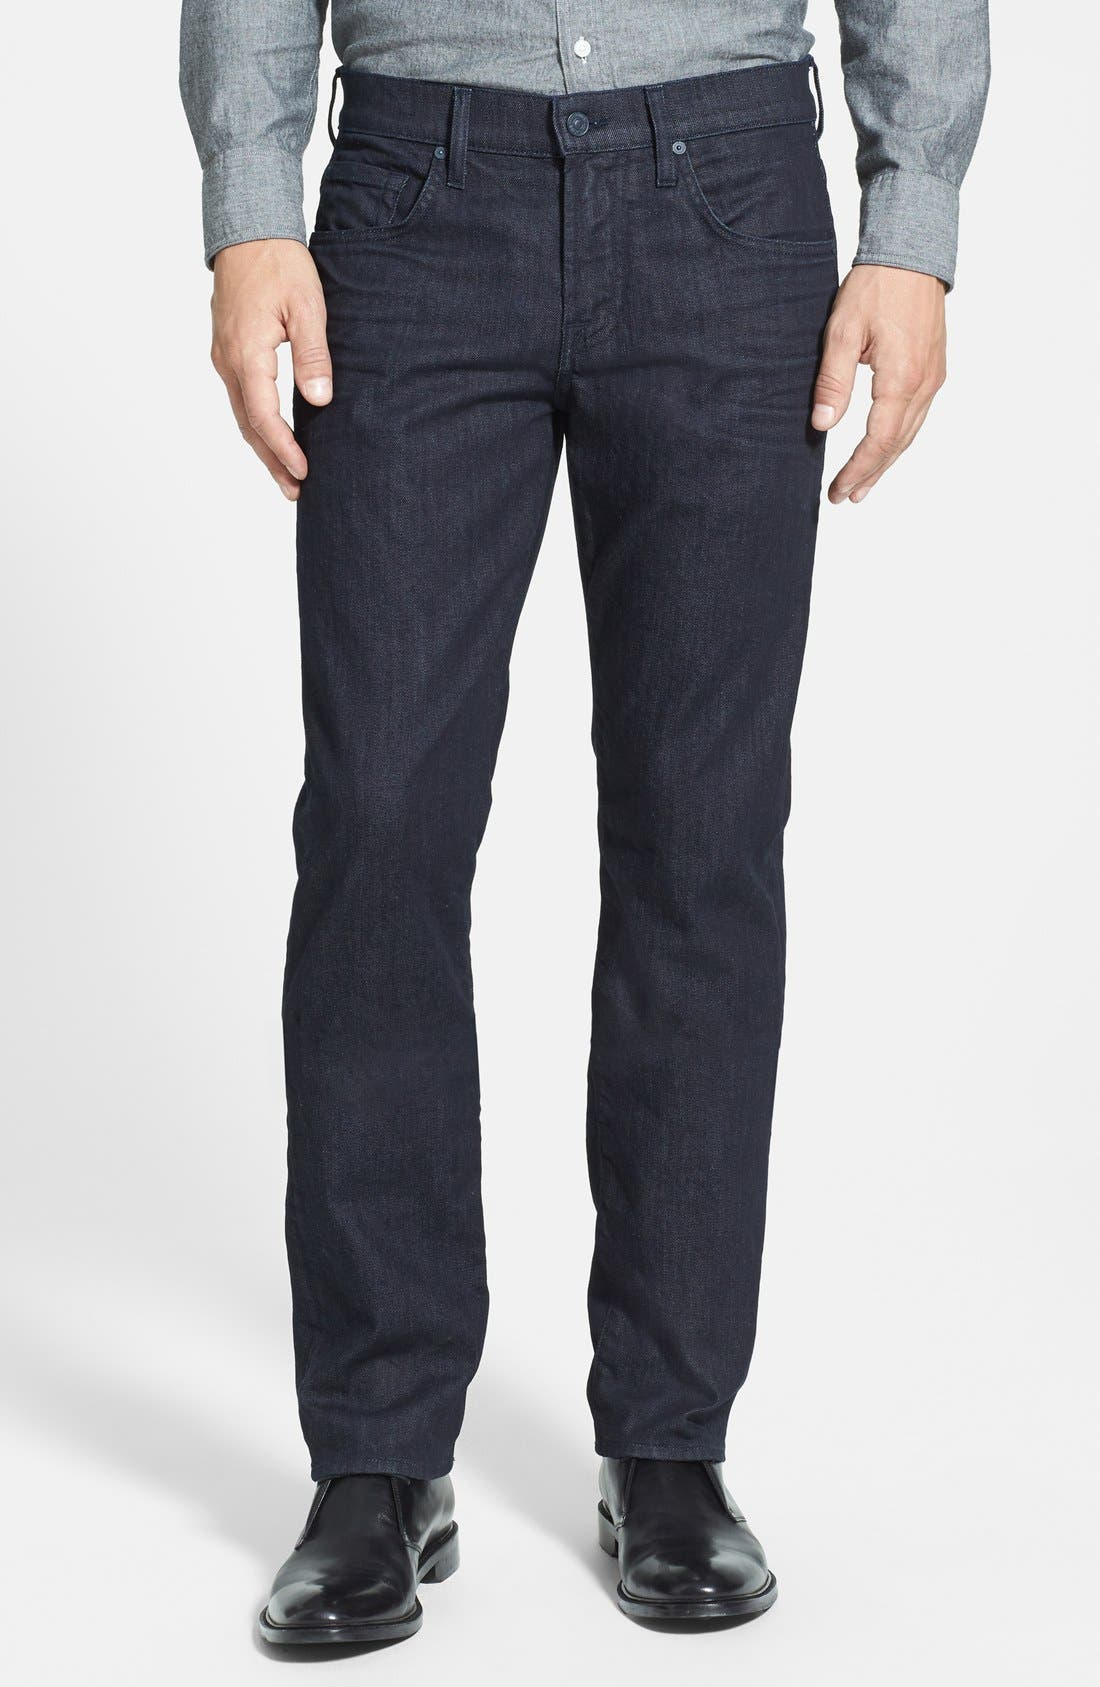 The Straight - Luxe Performance Slim Straight Leg Jeans, Main, color, DEEP WELL